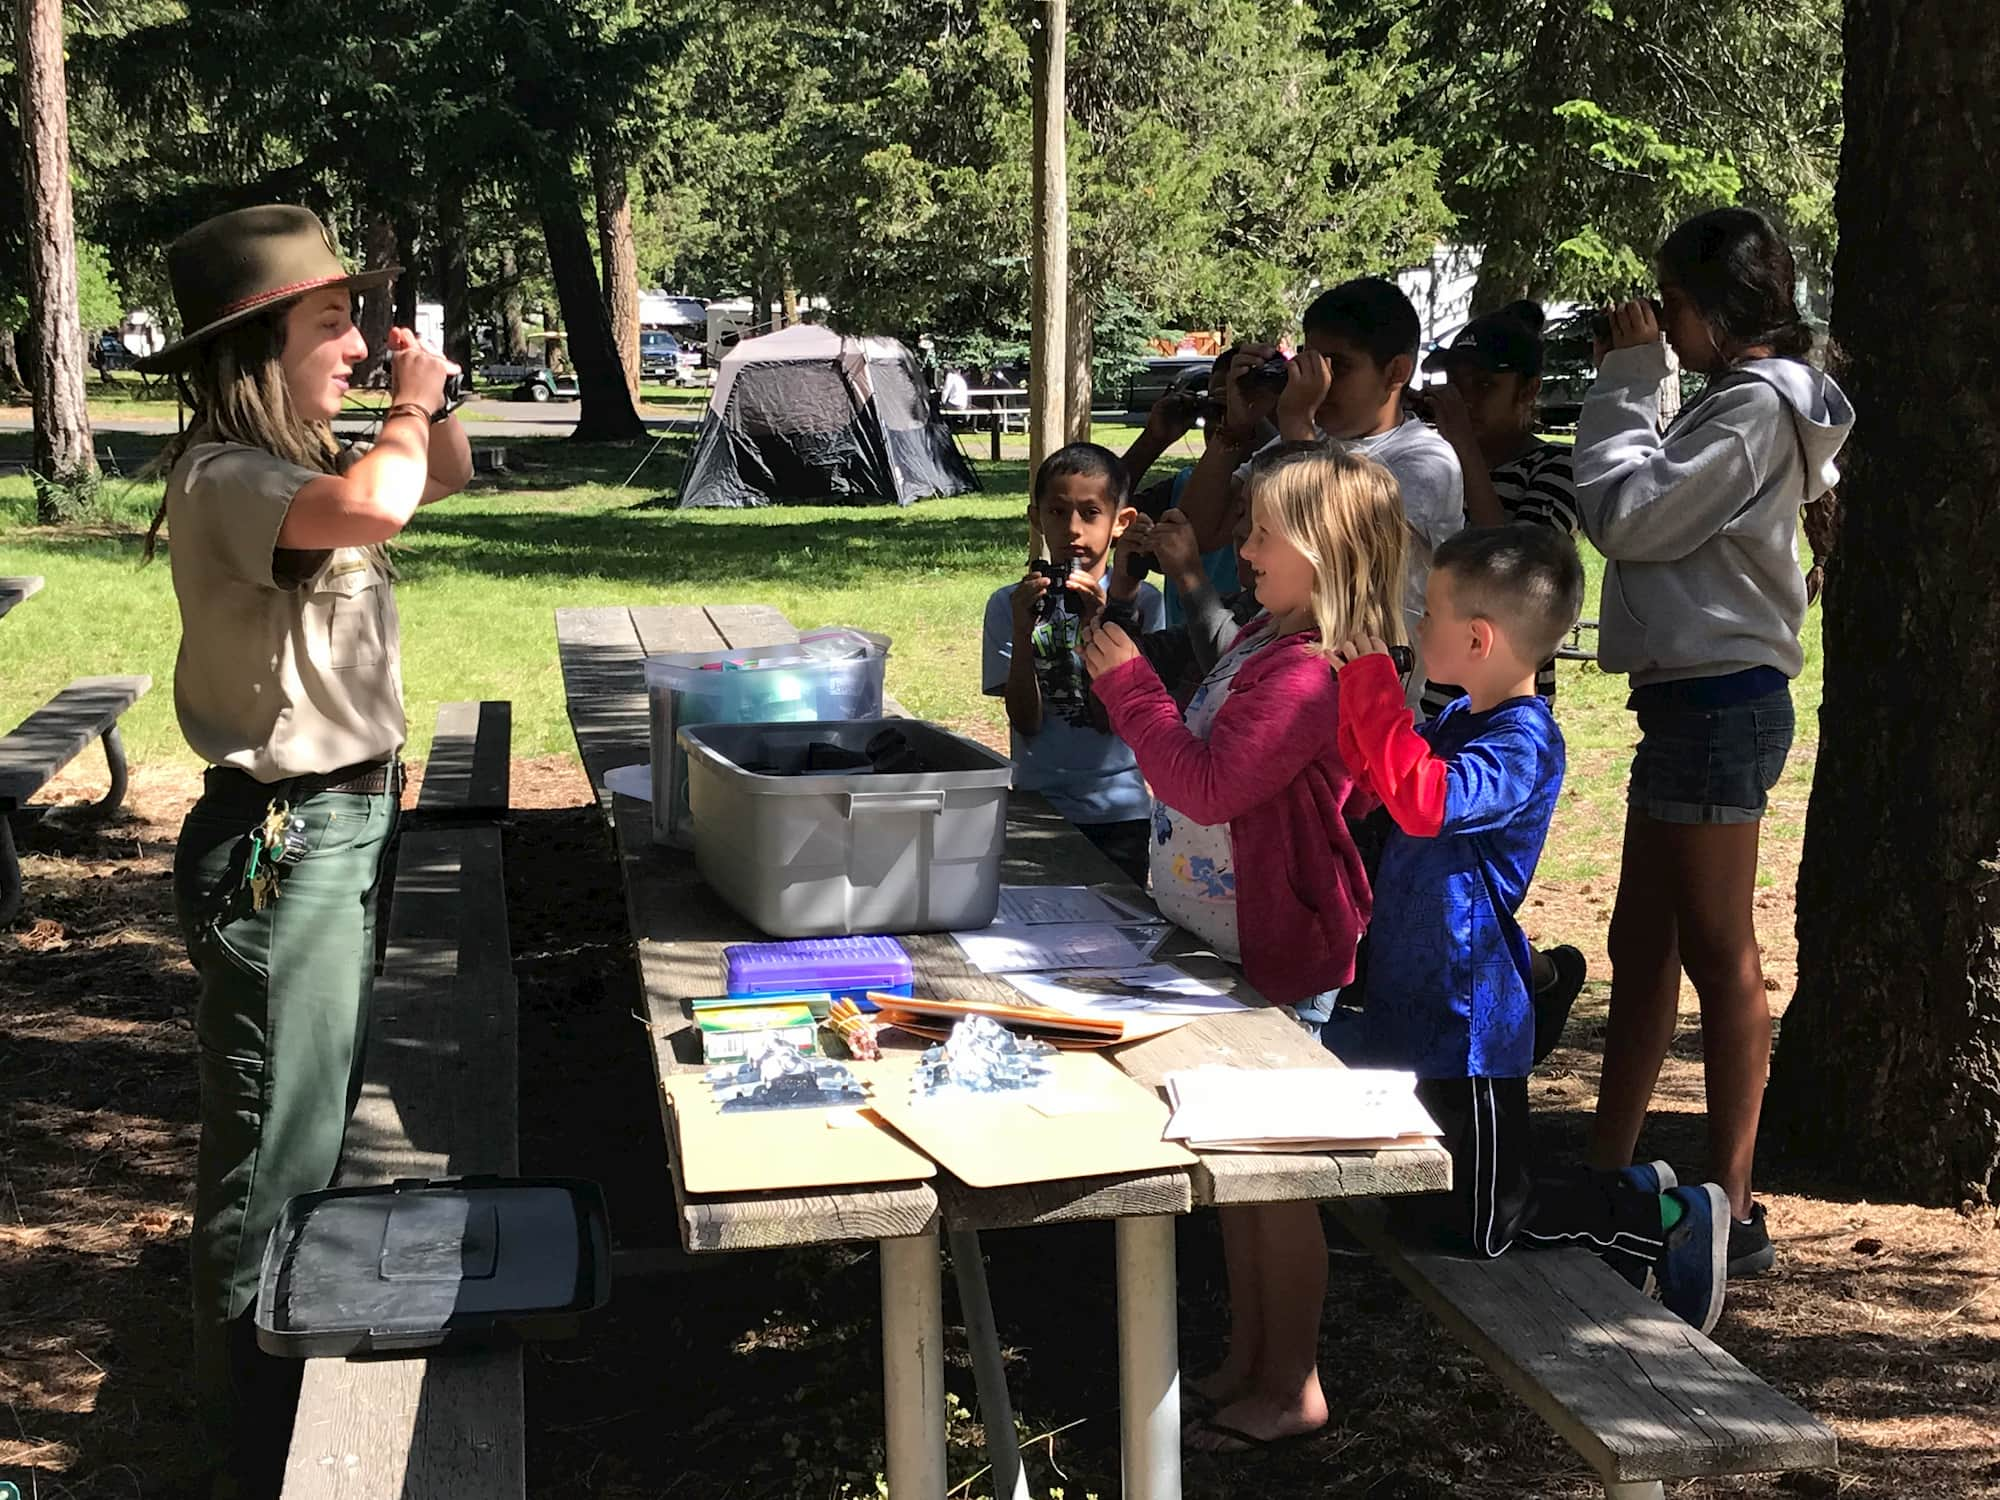 a ranger at a national park swears in childern participating in a junior ranger program